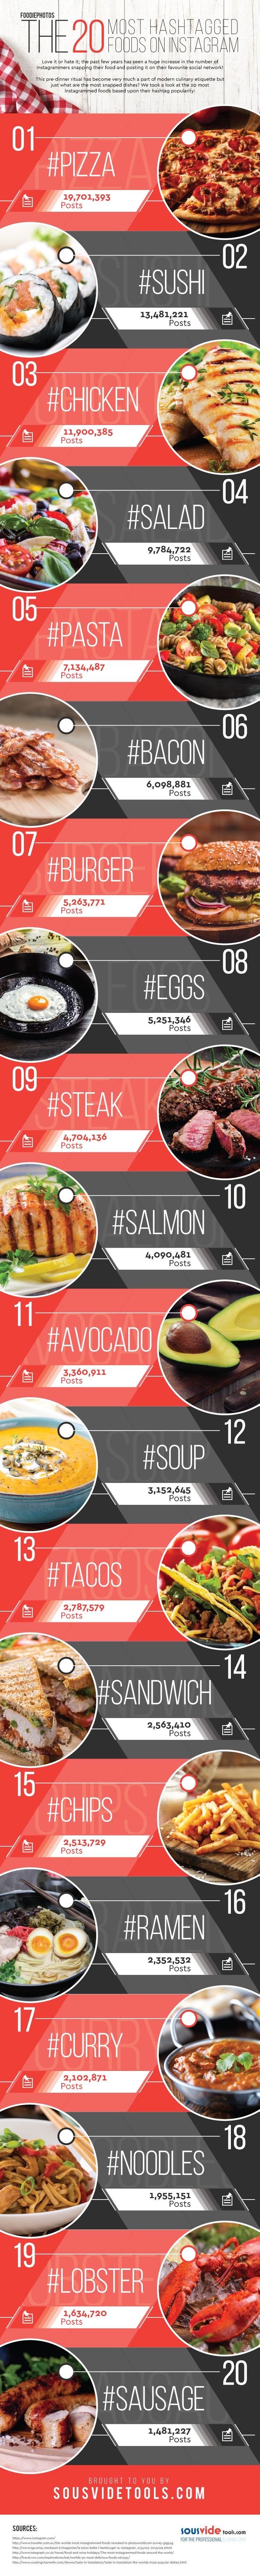 20 hashtags food plus populaires instagram